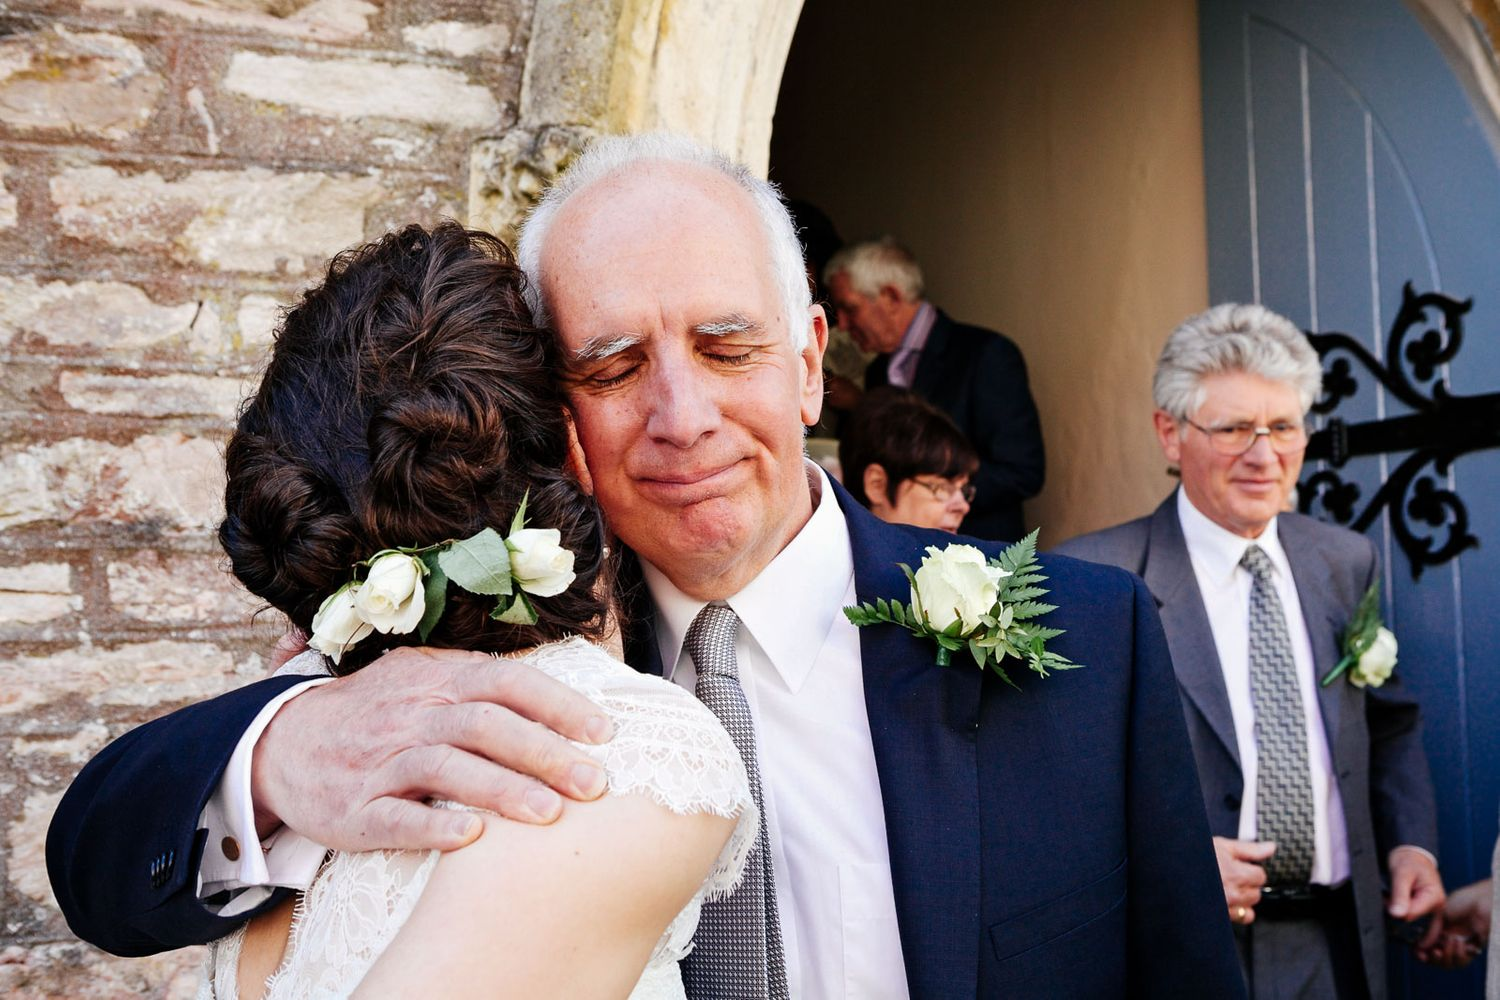 photograph of father-of-the-bride and bride having a beautiful moment after the wedding ceremony